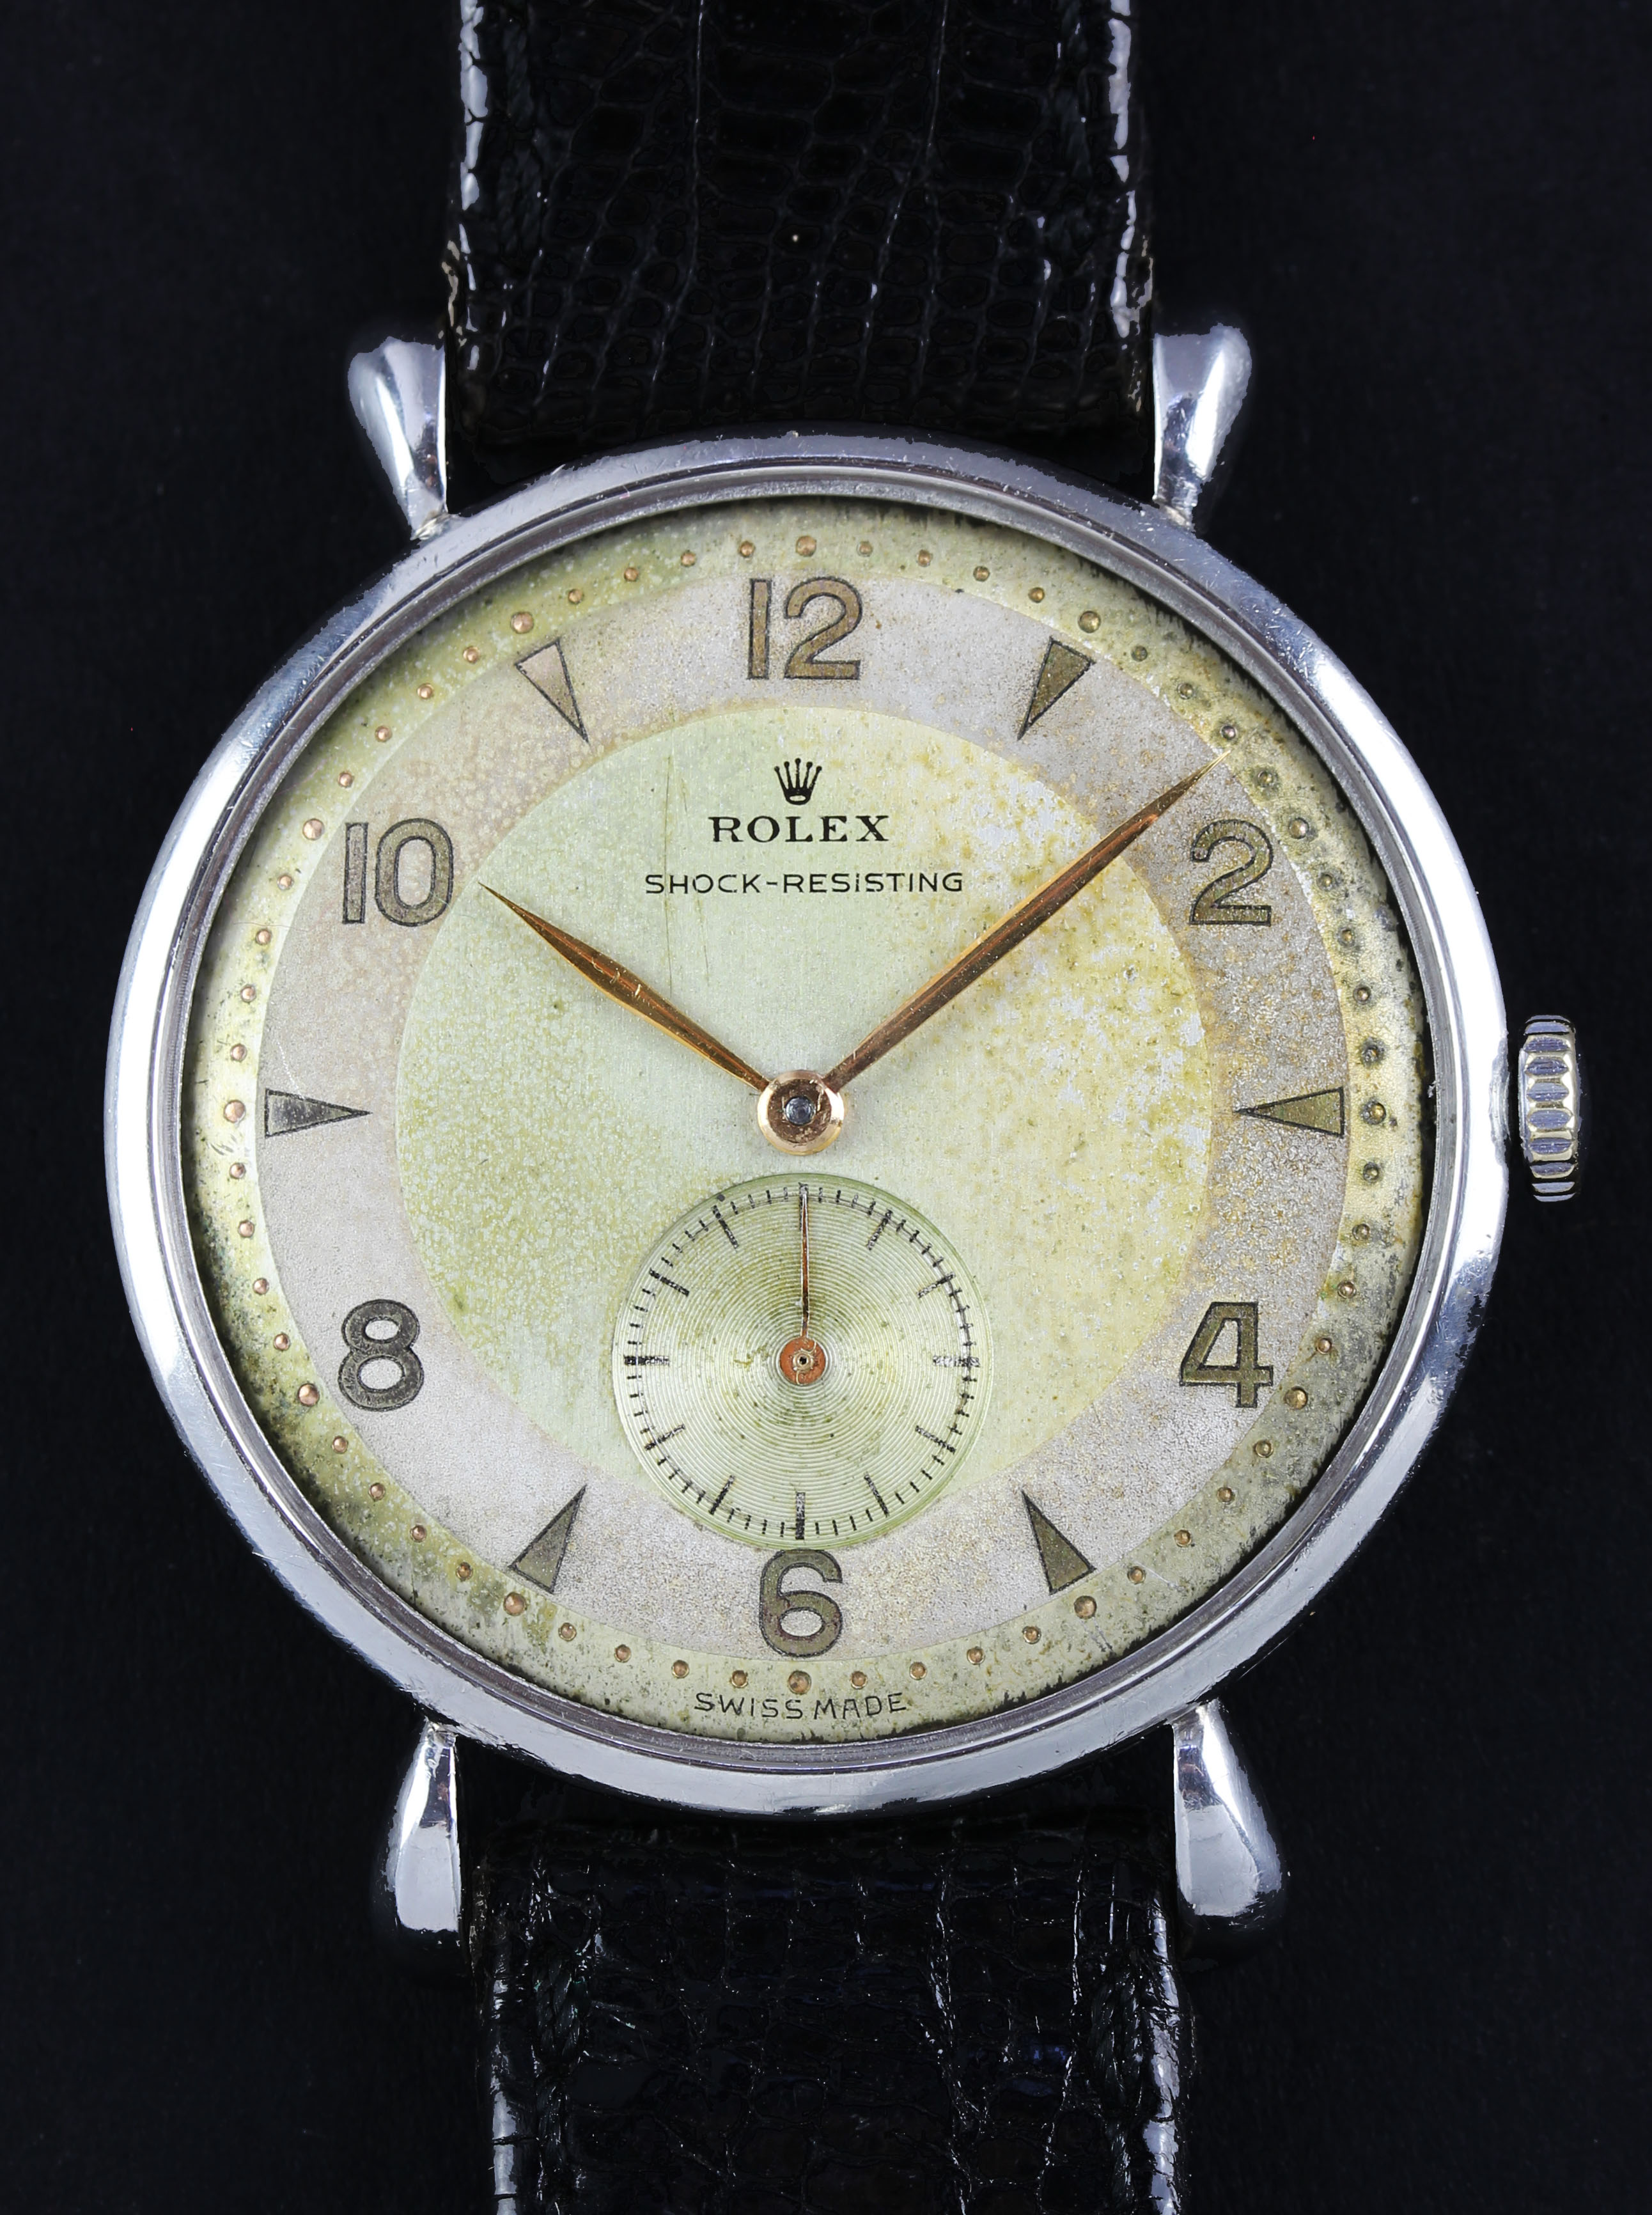 Rare ROLEX ref. 4120 from 1938